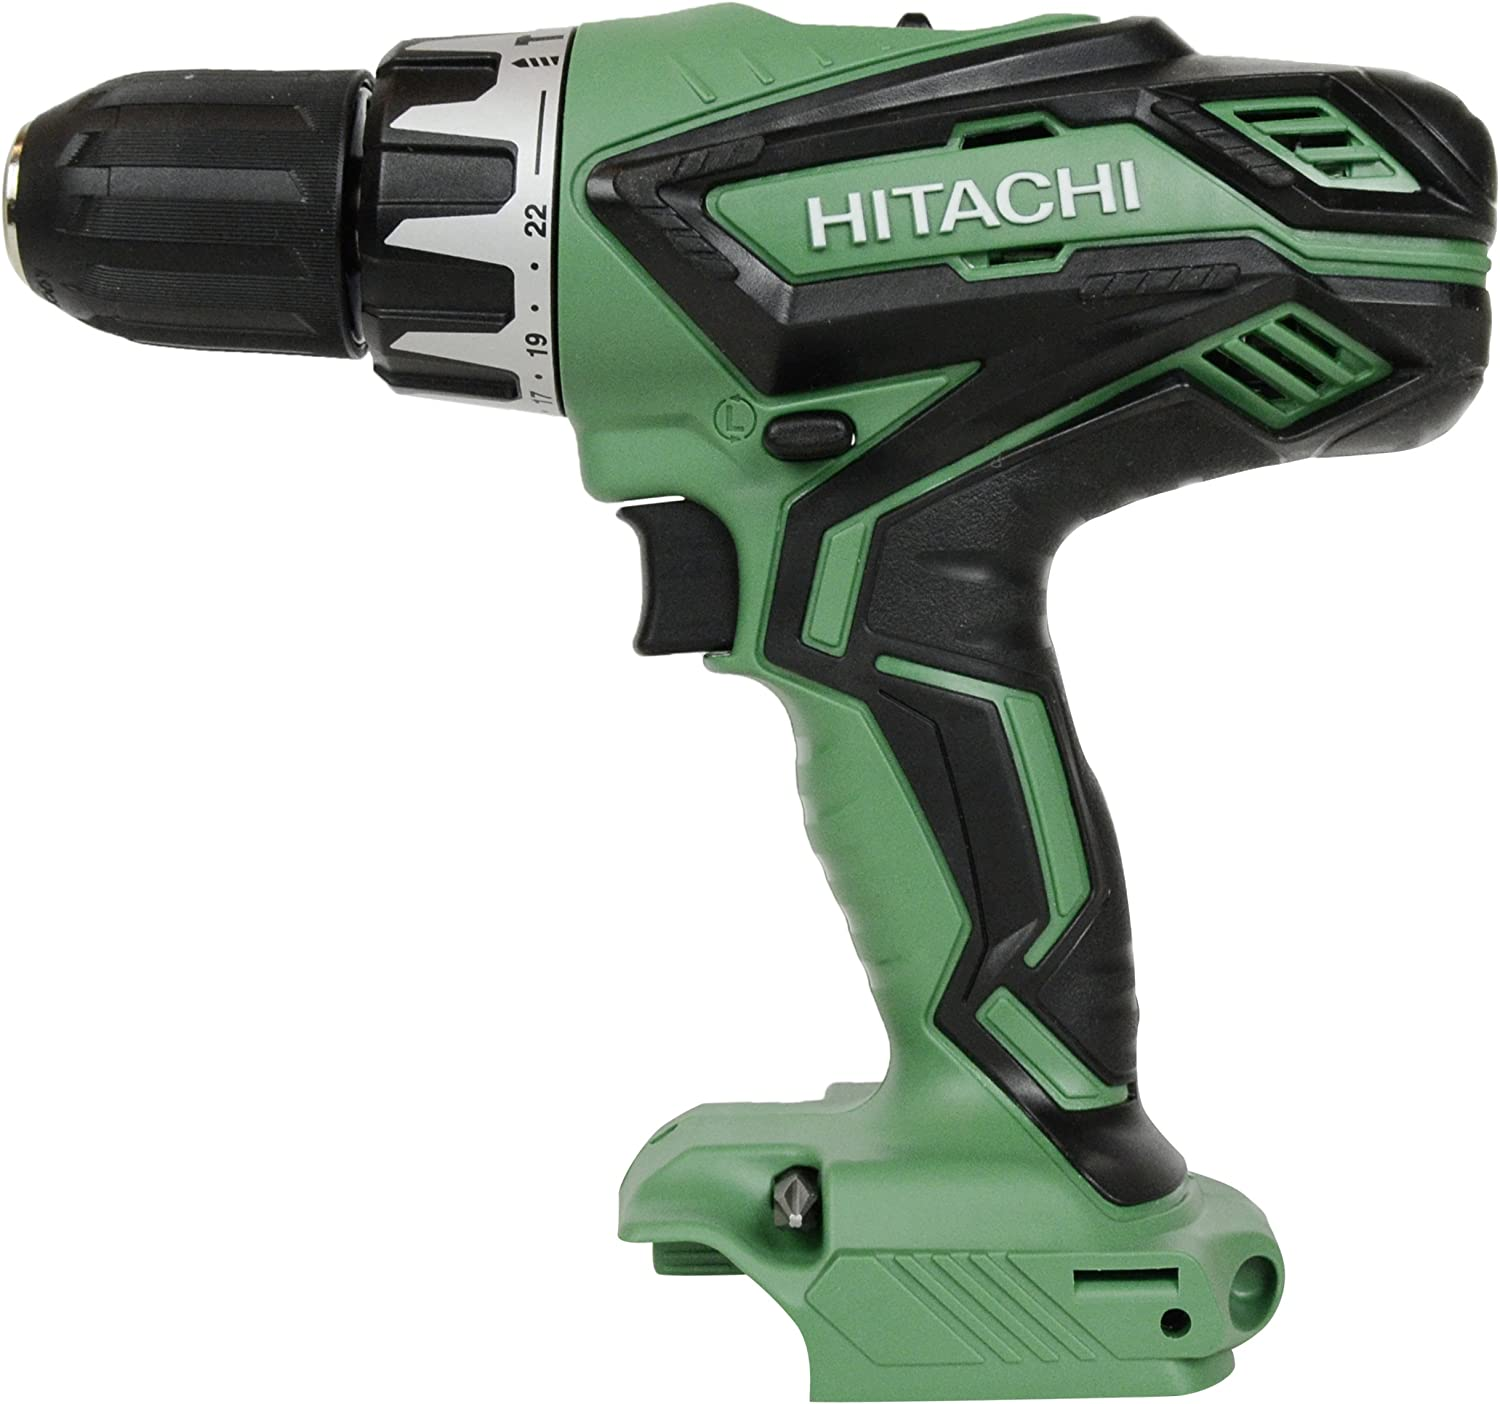 PORTER-CABLE 20V MAX Hammer Drill, Tool Only PCC620LB